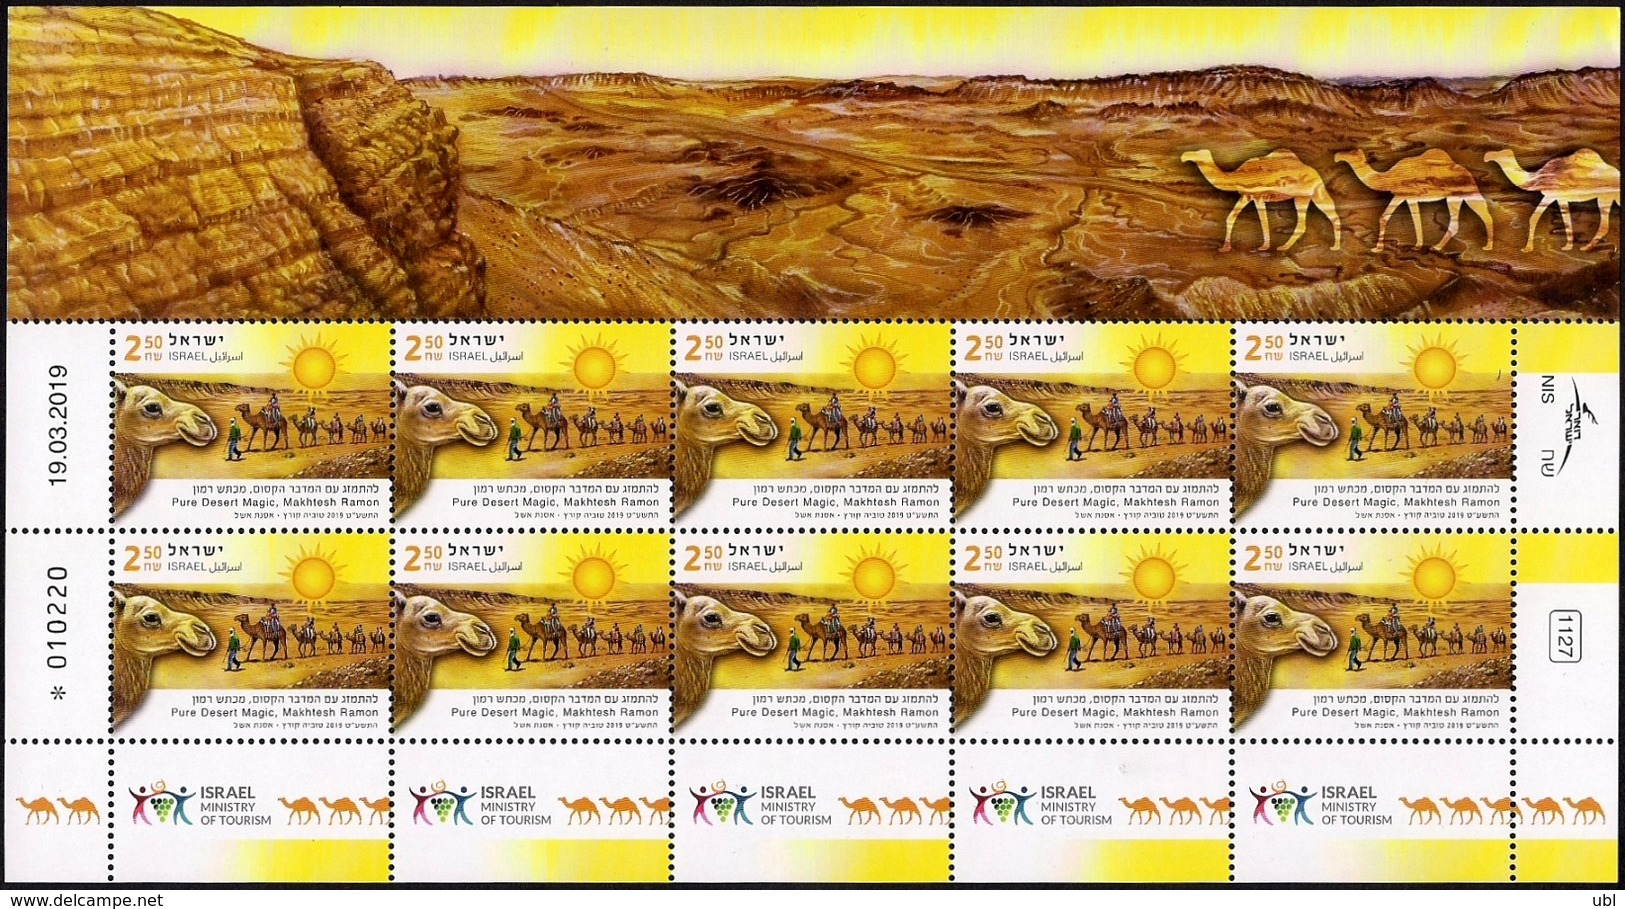 ISRAEL 2019 - Tourism In Israel - Birds - Camels - Rivers - Christianity - 3 Decorative Sheets Of 15 Stamps - MNH - Other